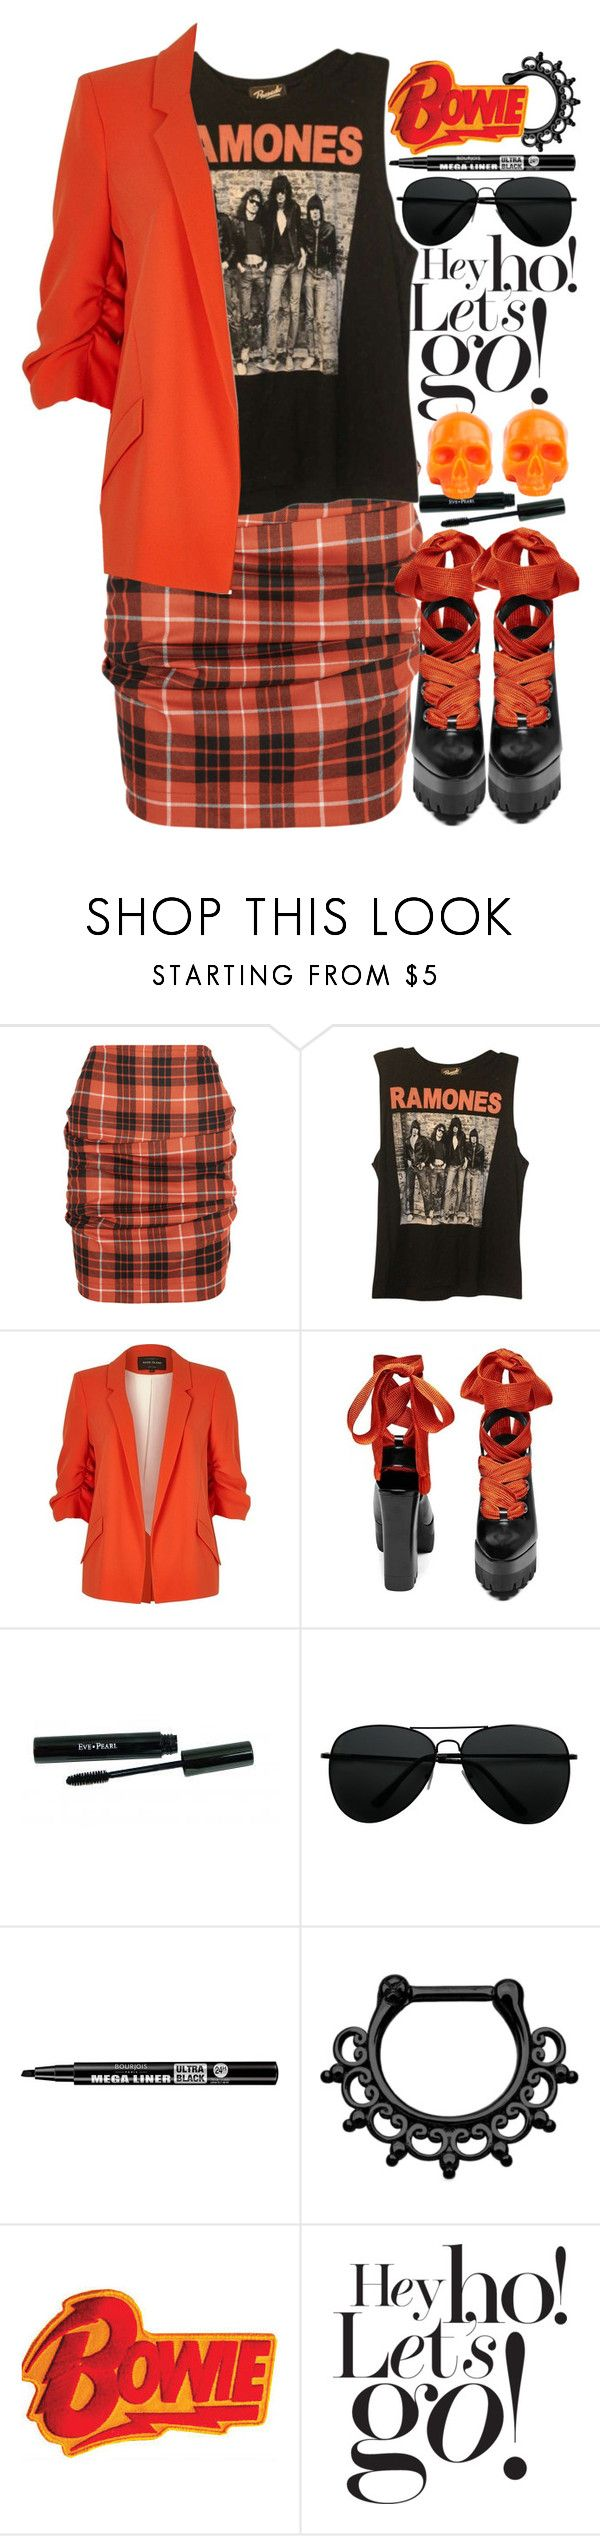 """""""1332"""" by anastaziah2014 ❤ liked on Polyvore featuring Vivienne Westwood Anglomania, Forever 21, River Island, Bourjois, Damaris and D.L. & Co."""